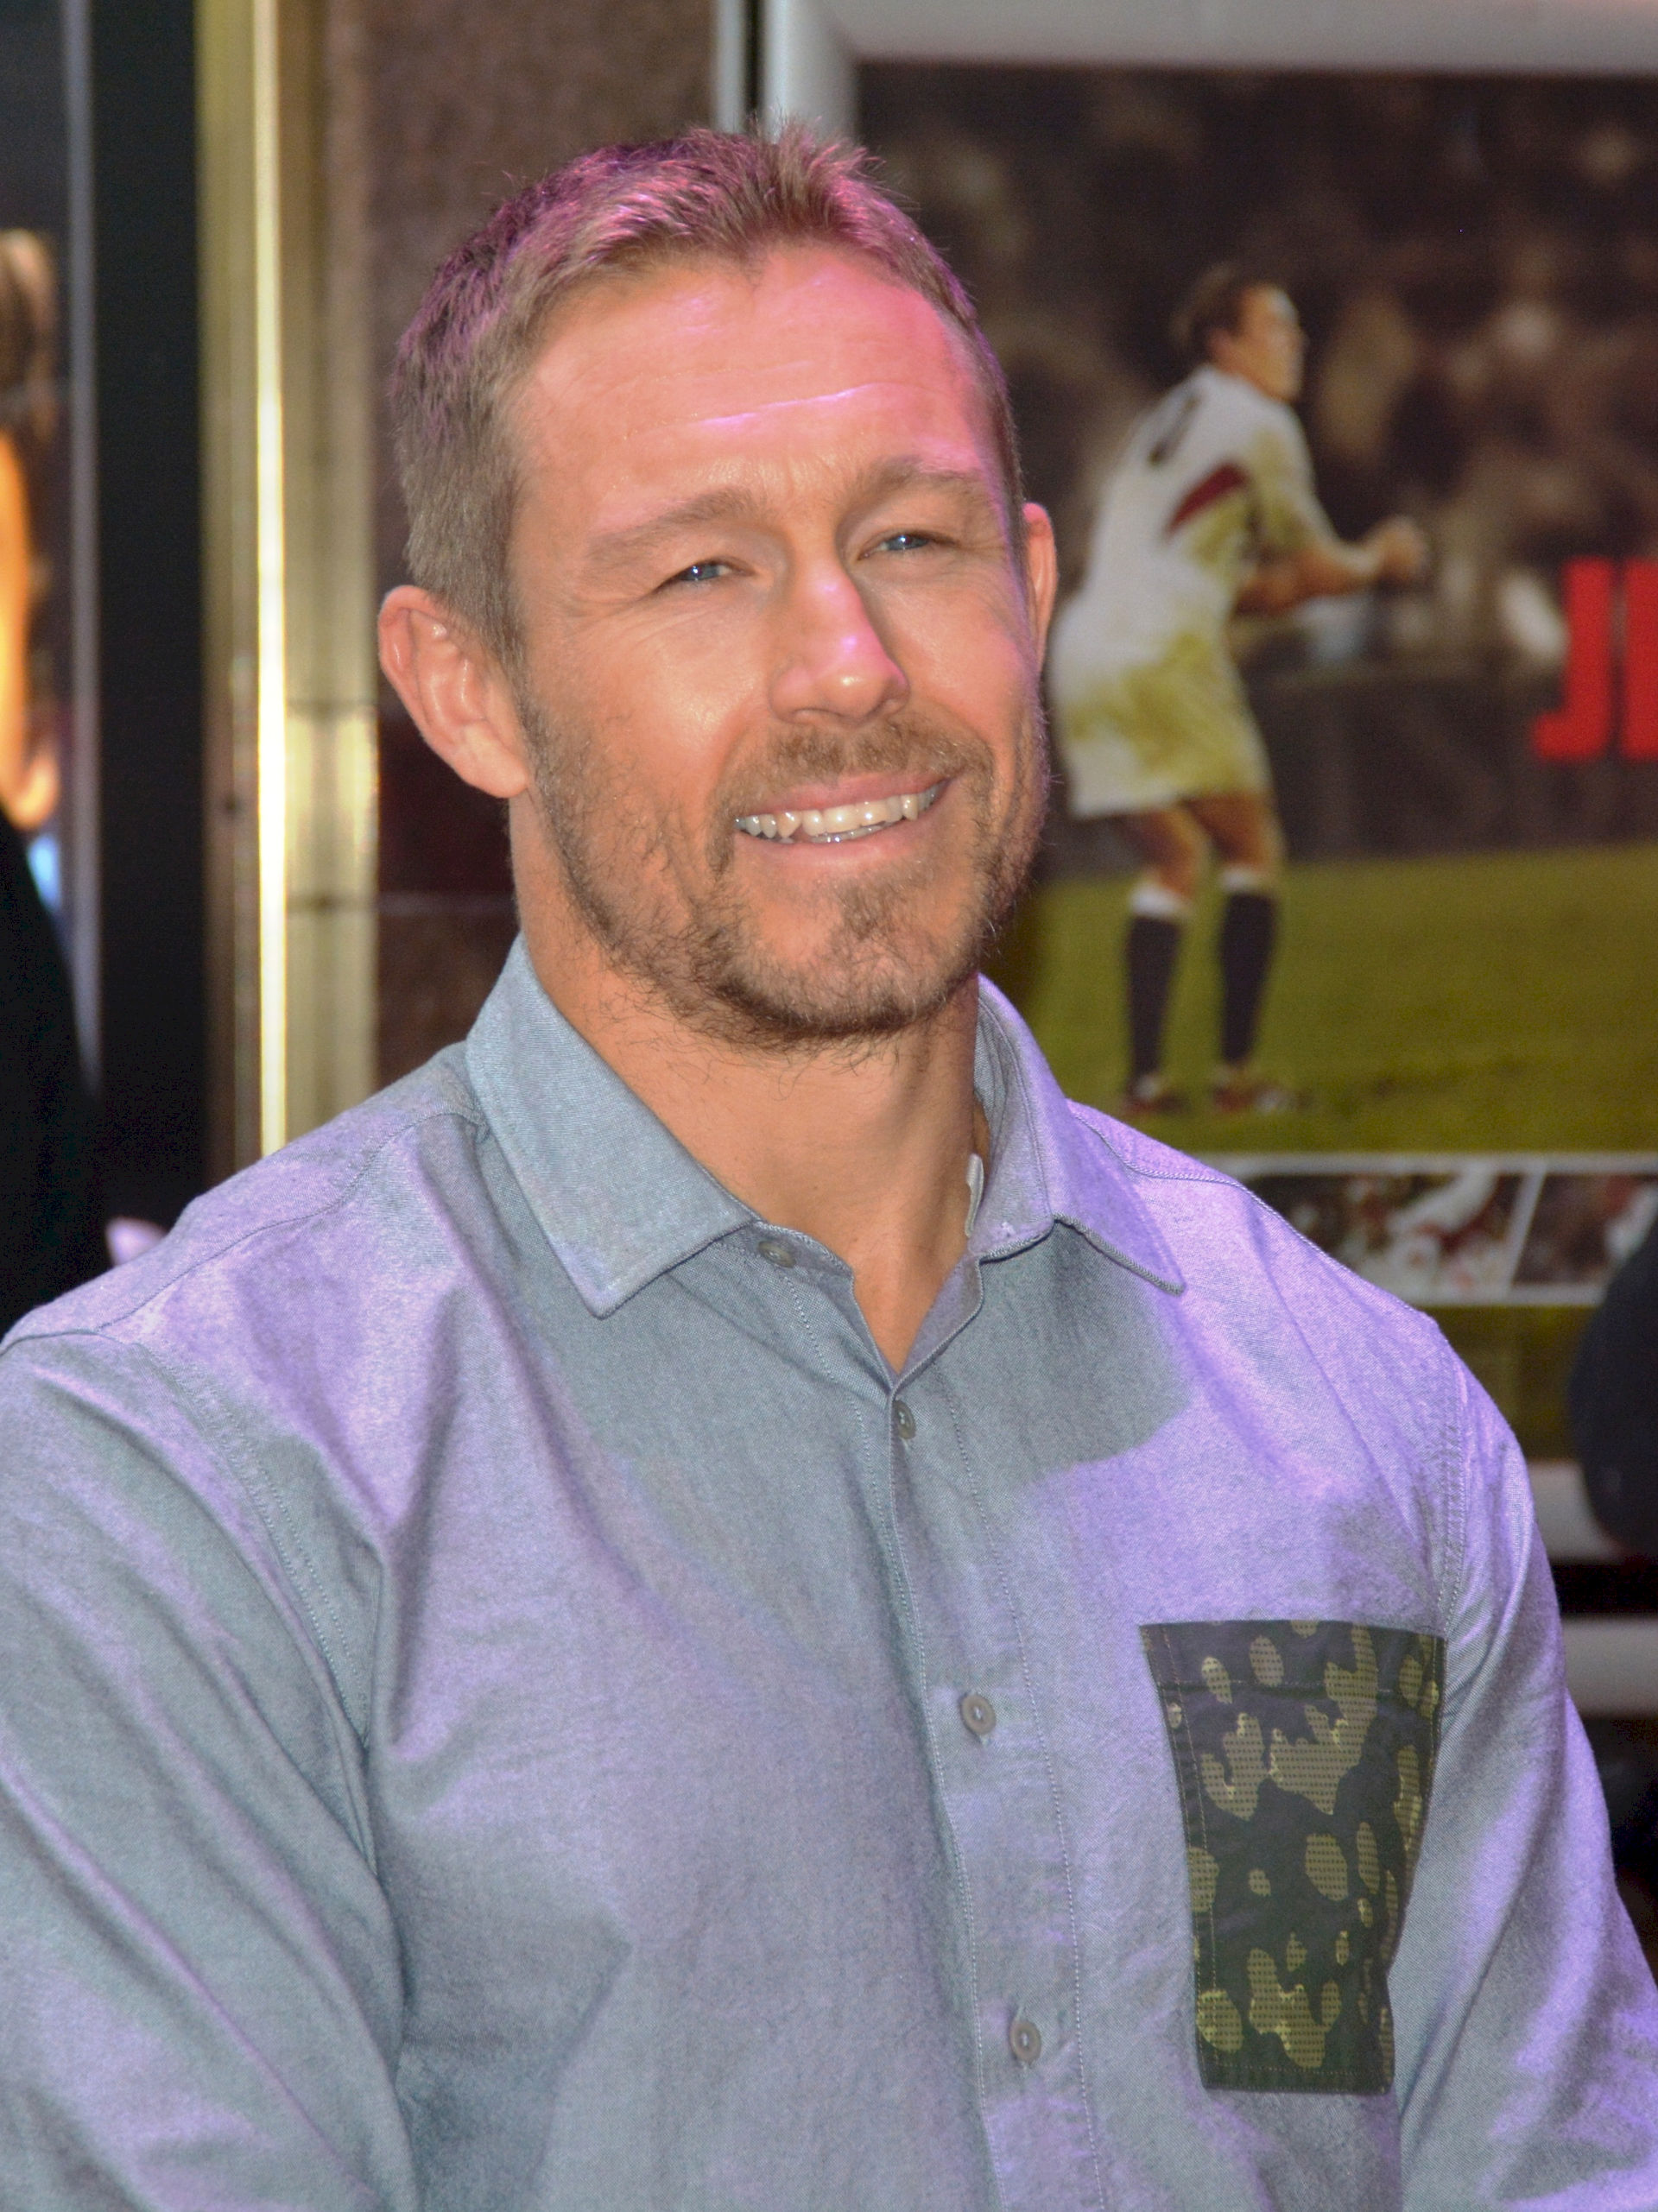 Photo of Jonny Wilkinson: Professional rugby union player from England